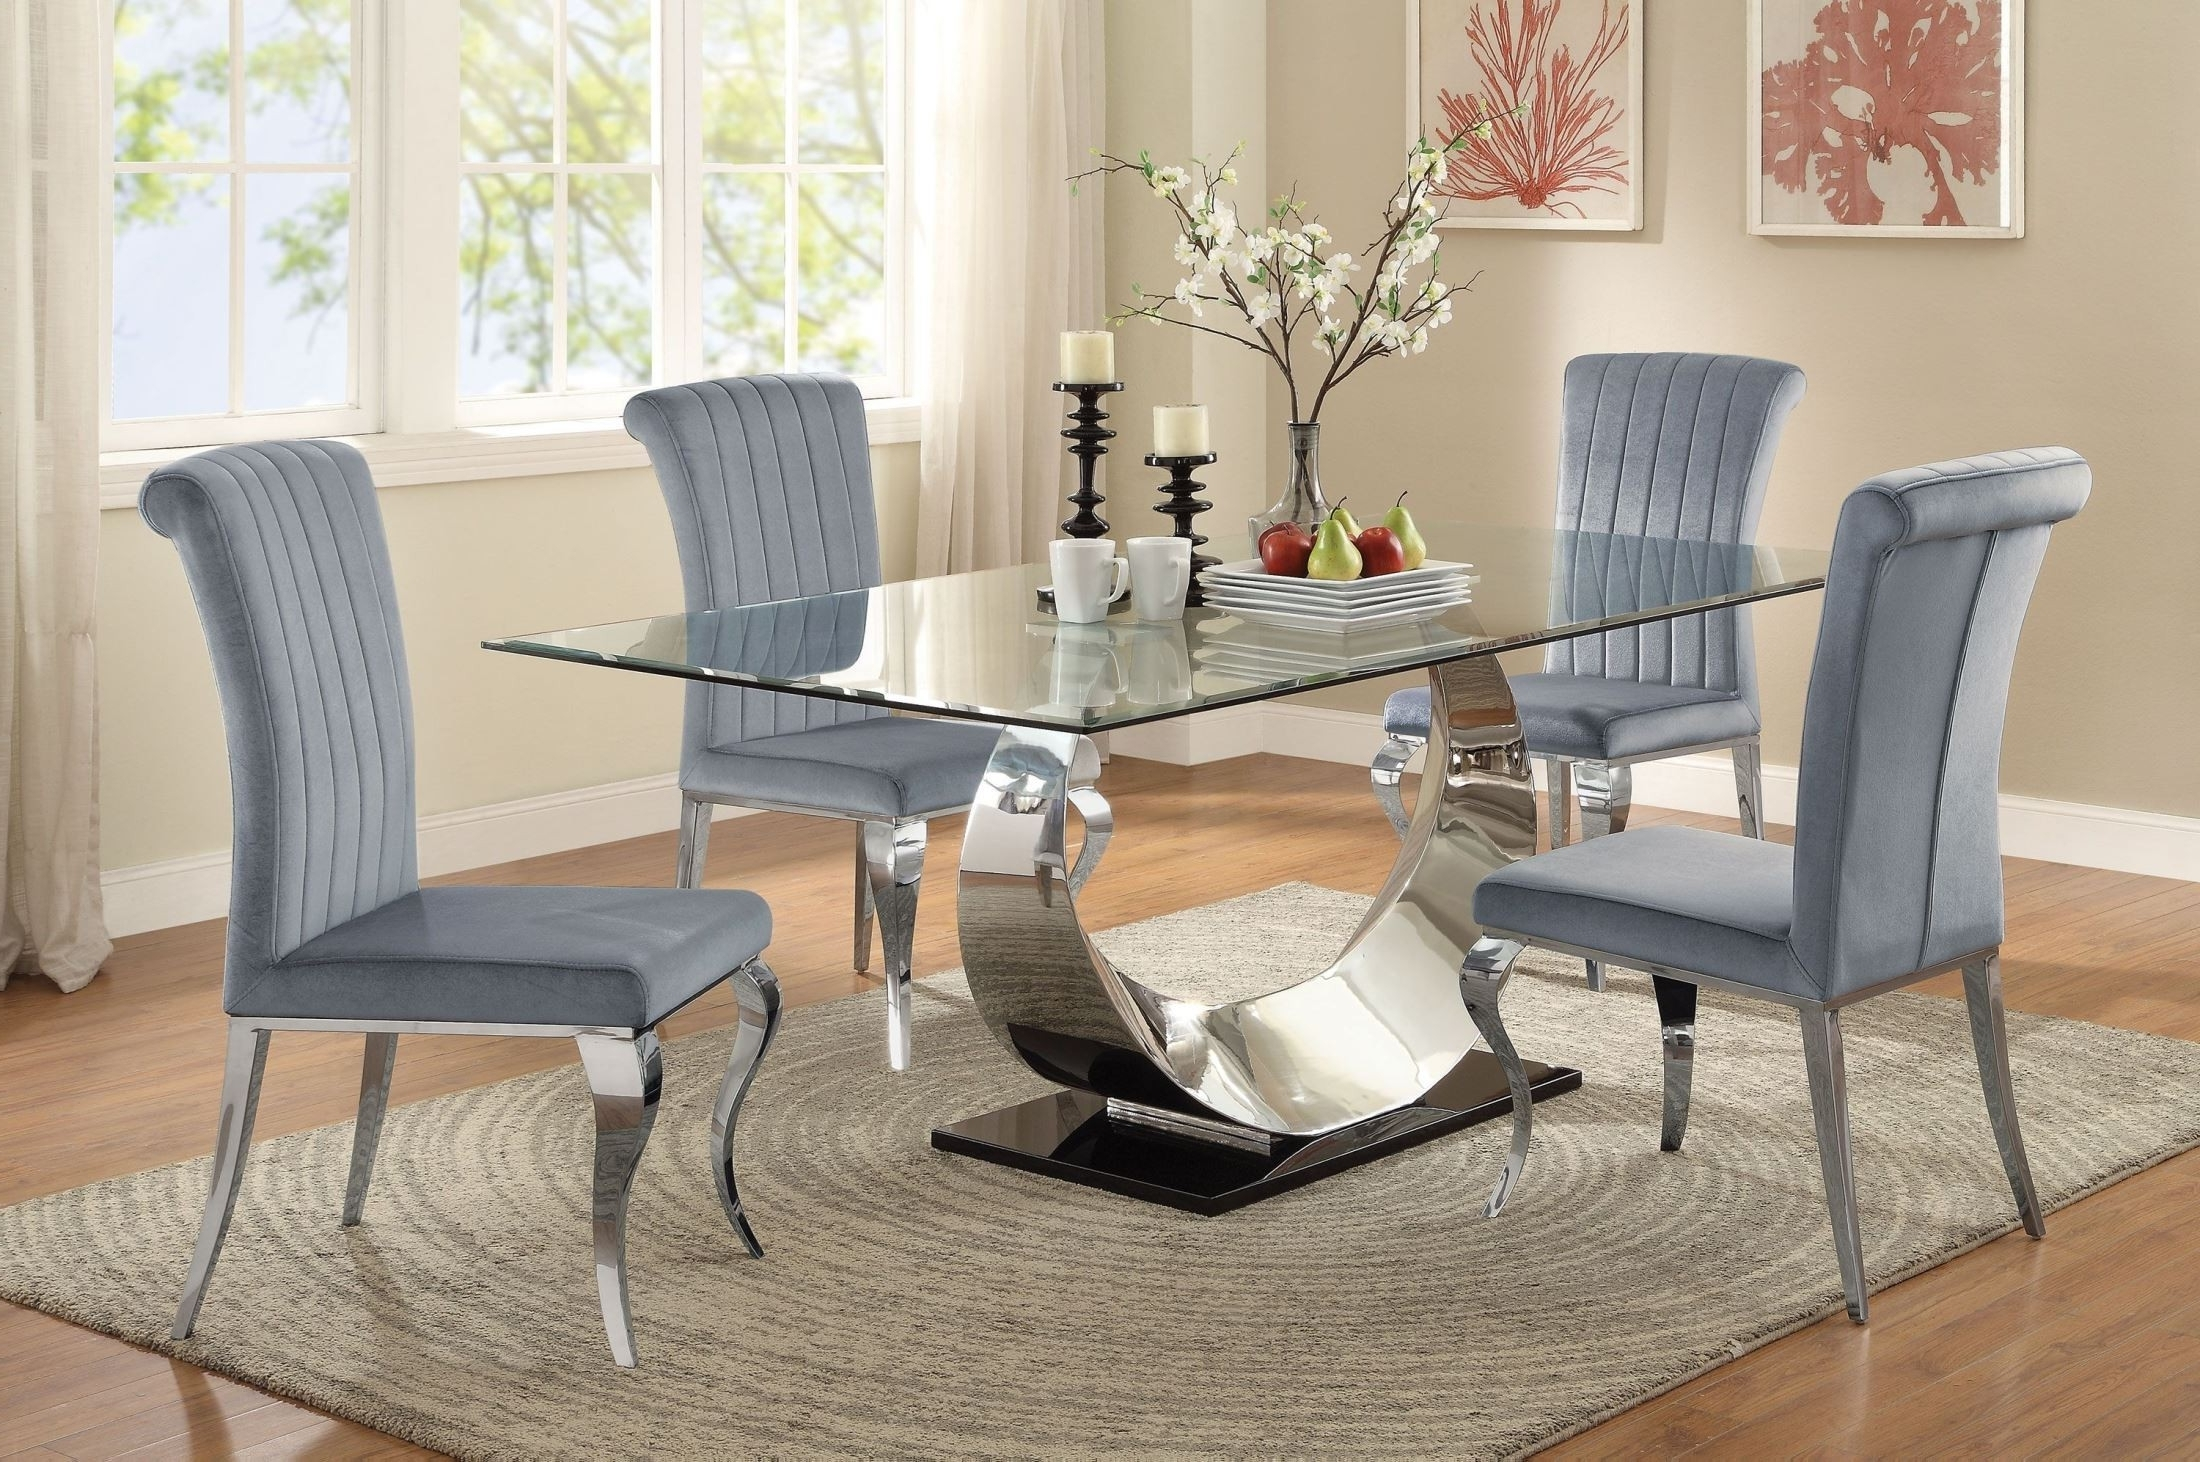 Chrome Dining Tables And Chairs With Regard To Well Known Coaster Manessier Chrome Dining Room Set – Manessier Collection: (View 4 of 25)